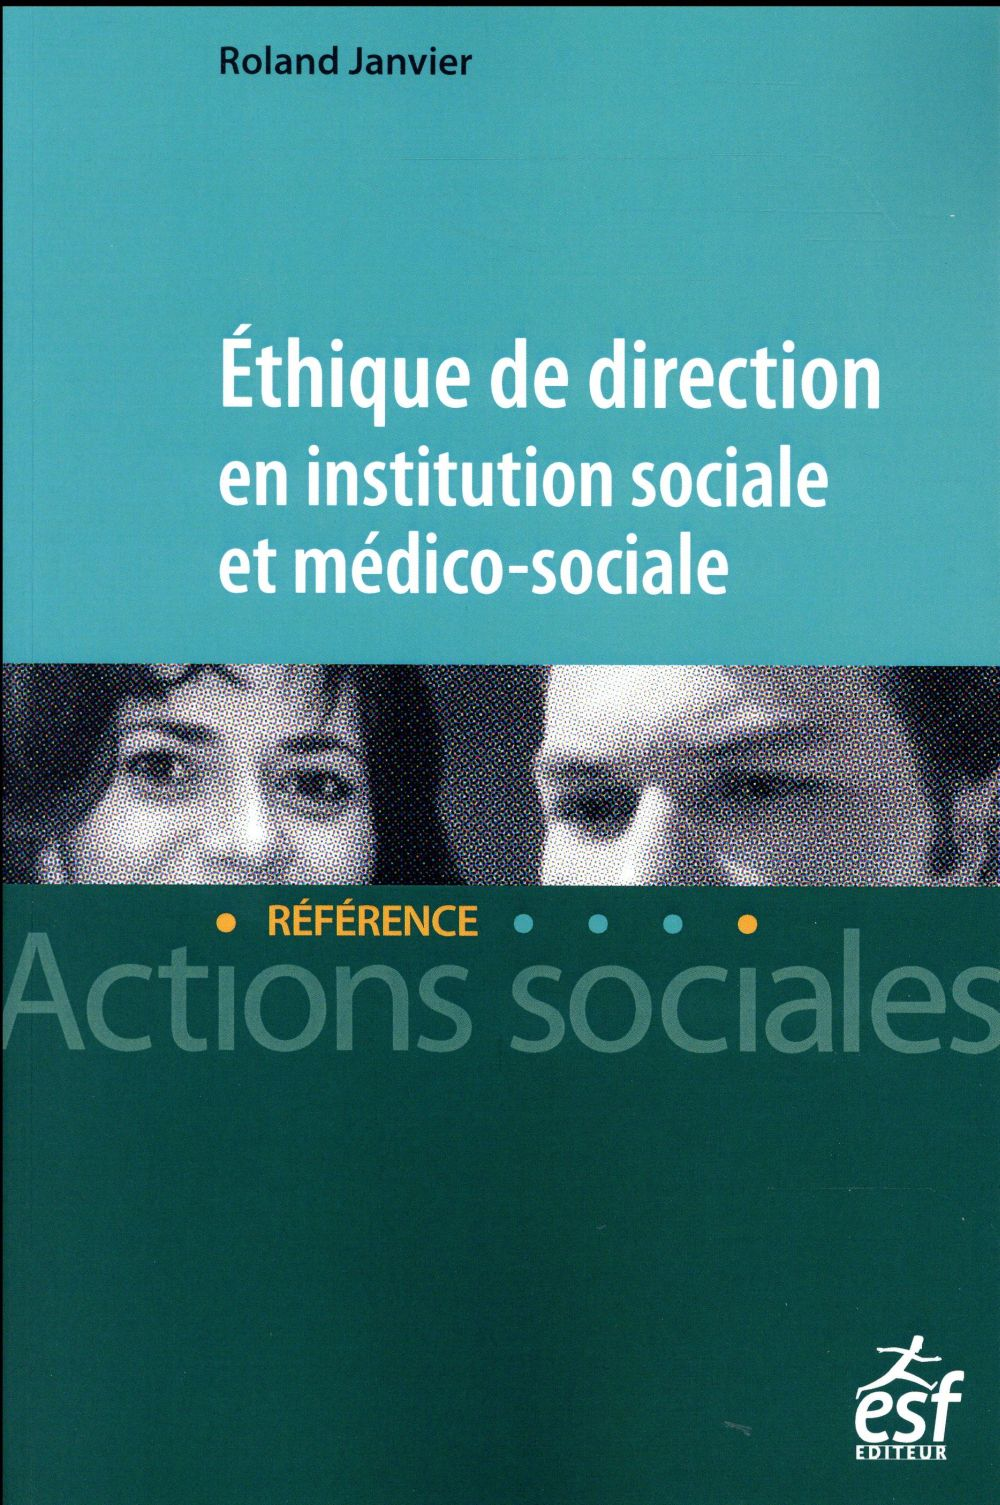 éthique de direction en institution sociale et médico-sociale